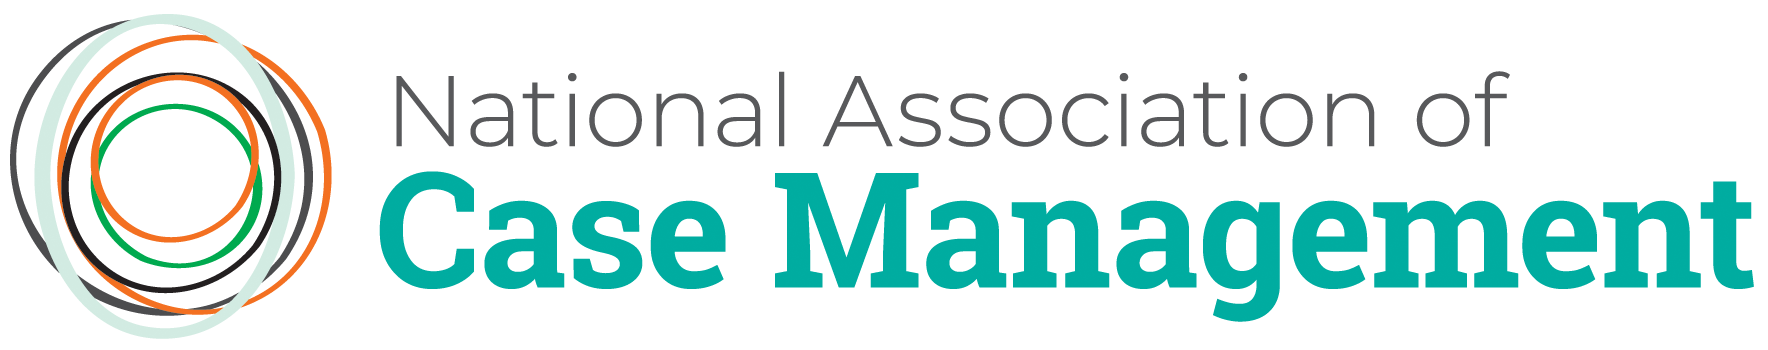 25th Annual Case Management Conference